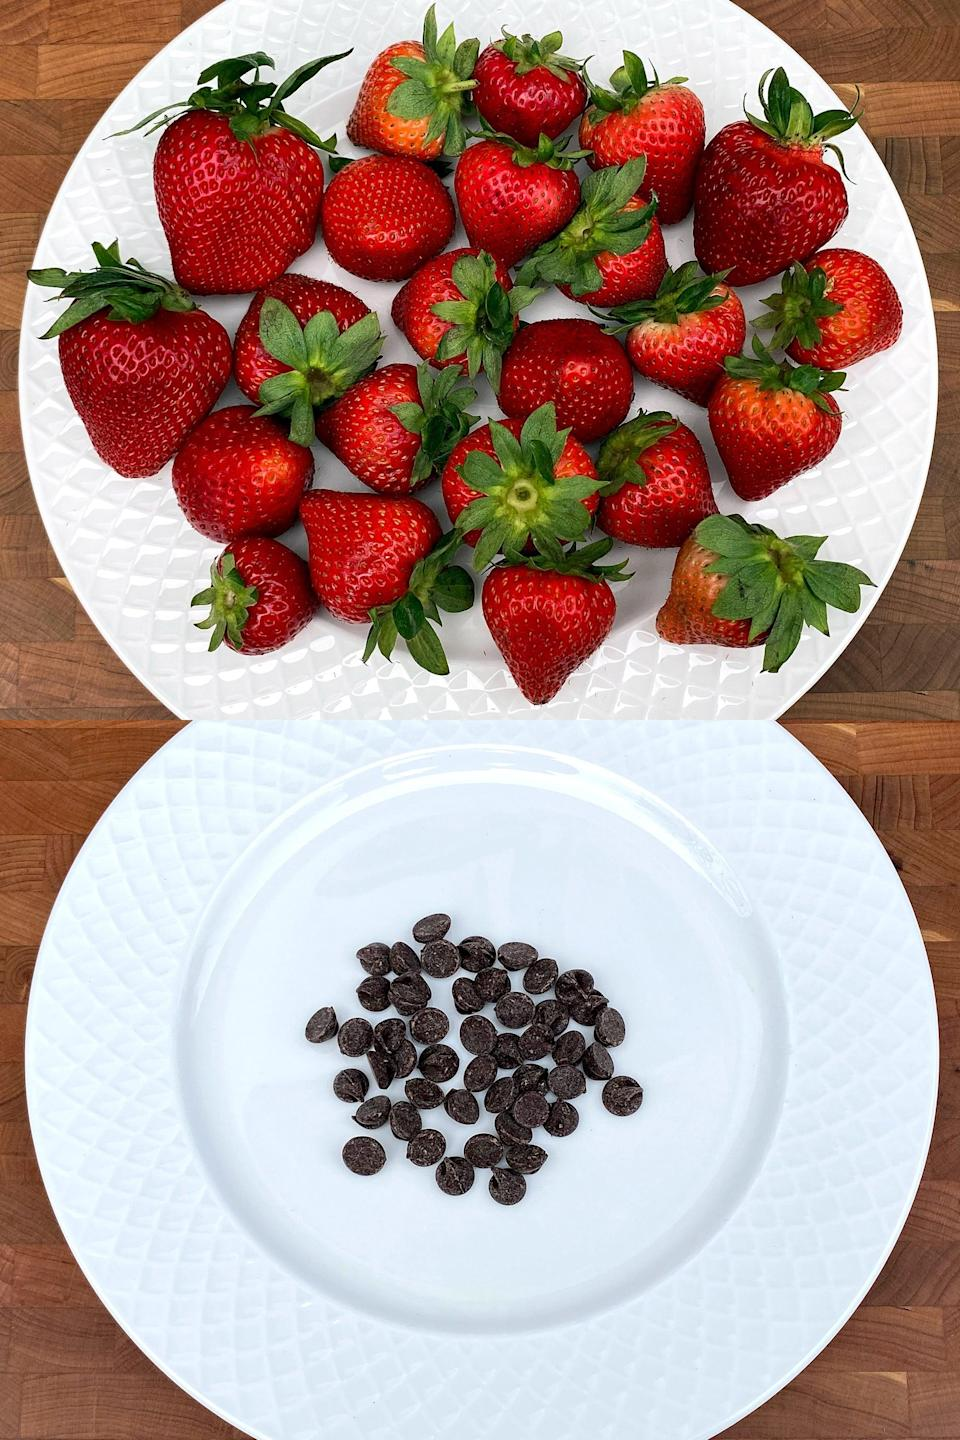 <p>This is 4 1/4 cups of strawberries versus 2 1/4 tablespoons of chocolate chips for 200 calories. I want to say I in no way think these two are on the same level of yumminess! But if you wanted something sweet, one cup of strawberries would do the trick for just 50 calories. If you're trying to lose weight and you always grab a handful of chocolate chips after a meal, you can see how the calories can start to add up.</p>